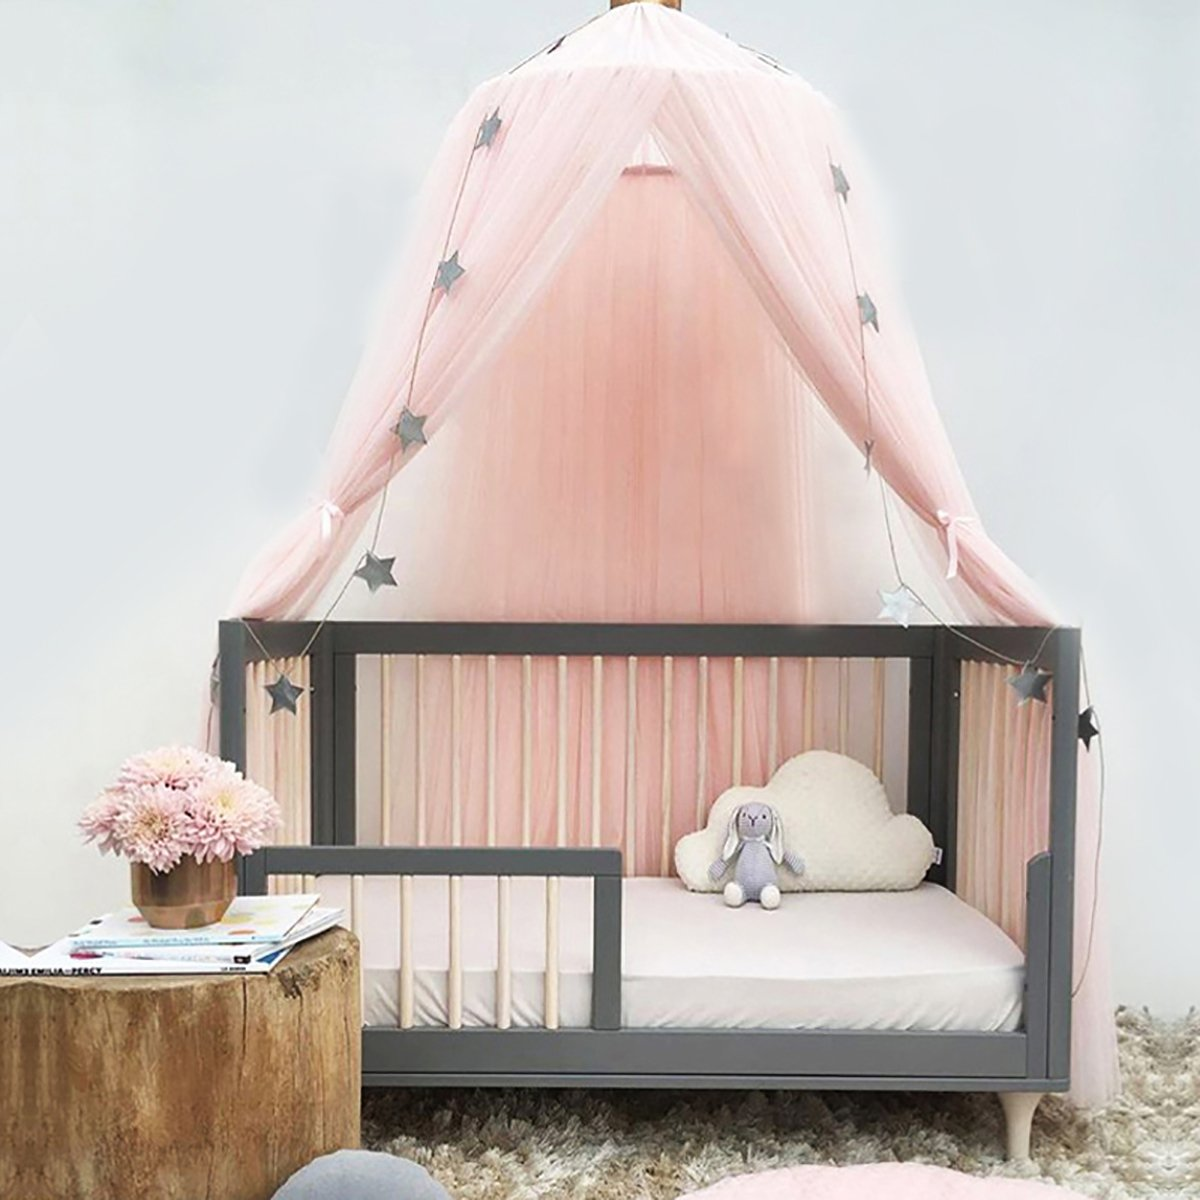 Jeteven Polyester Dome Princess Bed Canopy Kids Play Tent Mosquito Net with Crown for Baby Kids Indoor Outdoor Playing Reading Height 240cm/94.5in White Lorvsap JETEVENLorvsap2549